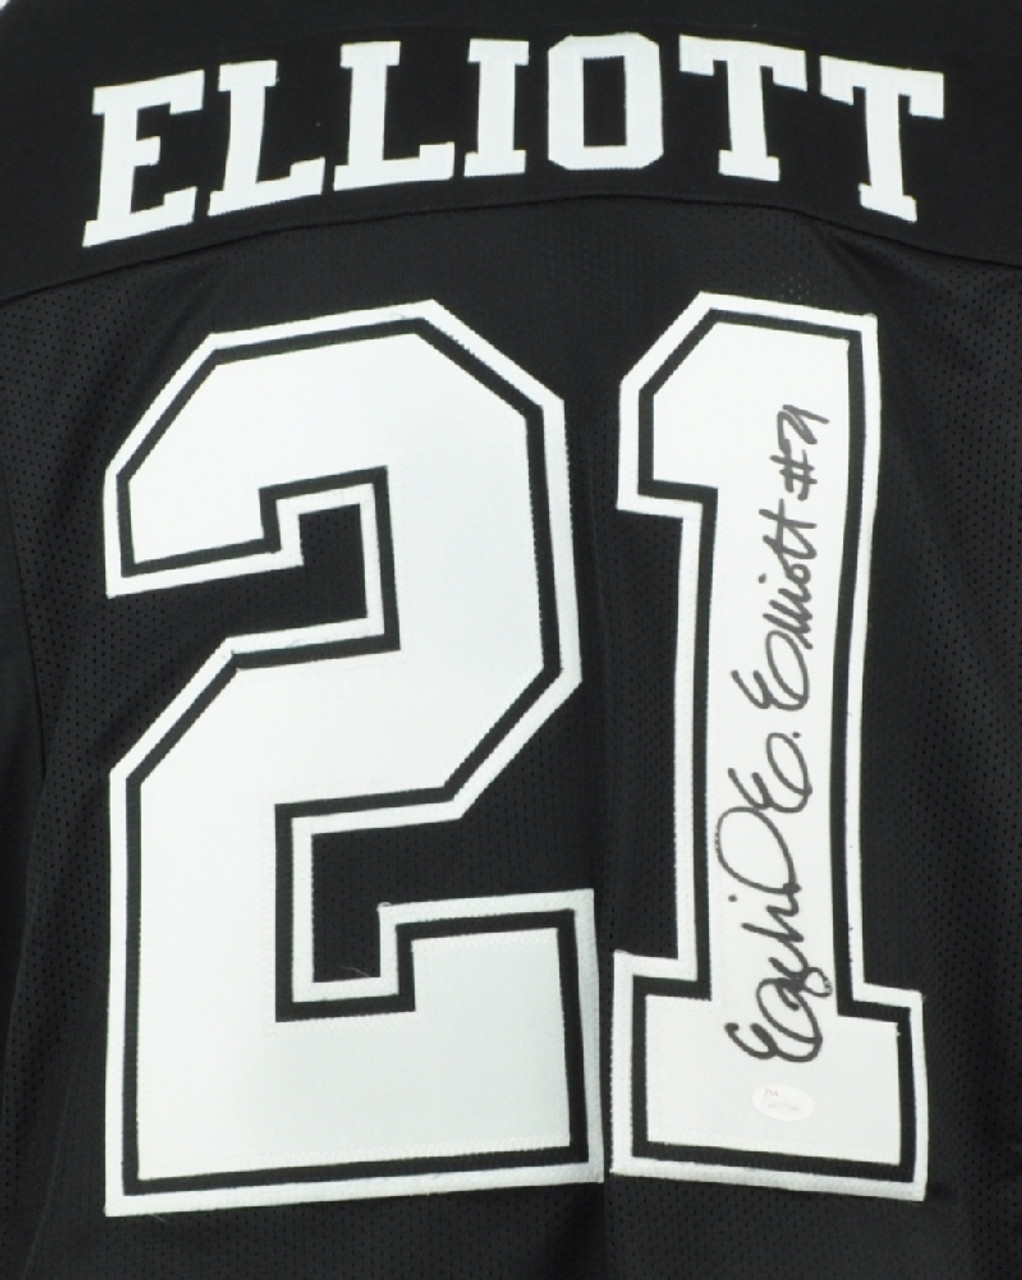 online retailer e2220 08fb3 NFL Dallas Cowboys Running Back Ezekiel Elliott 21 Signed Autographed XL  Black Replica Jersey JSA Mens